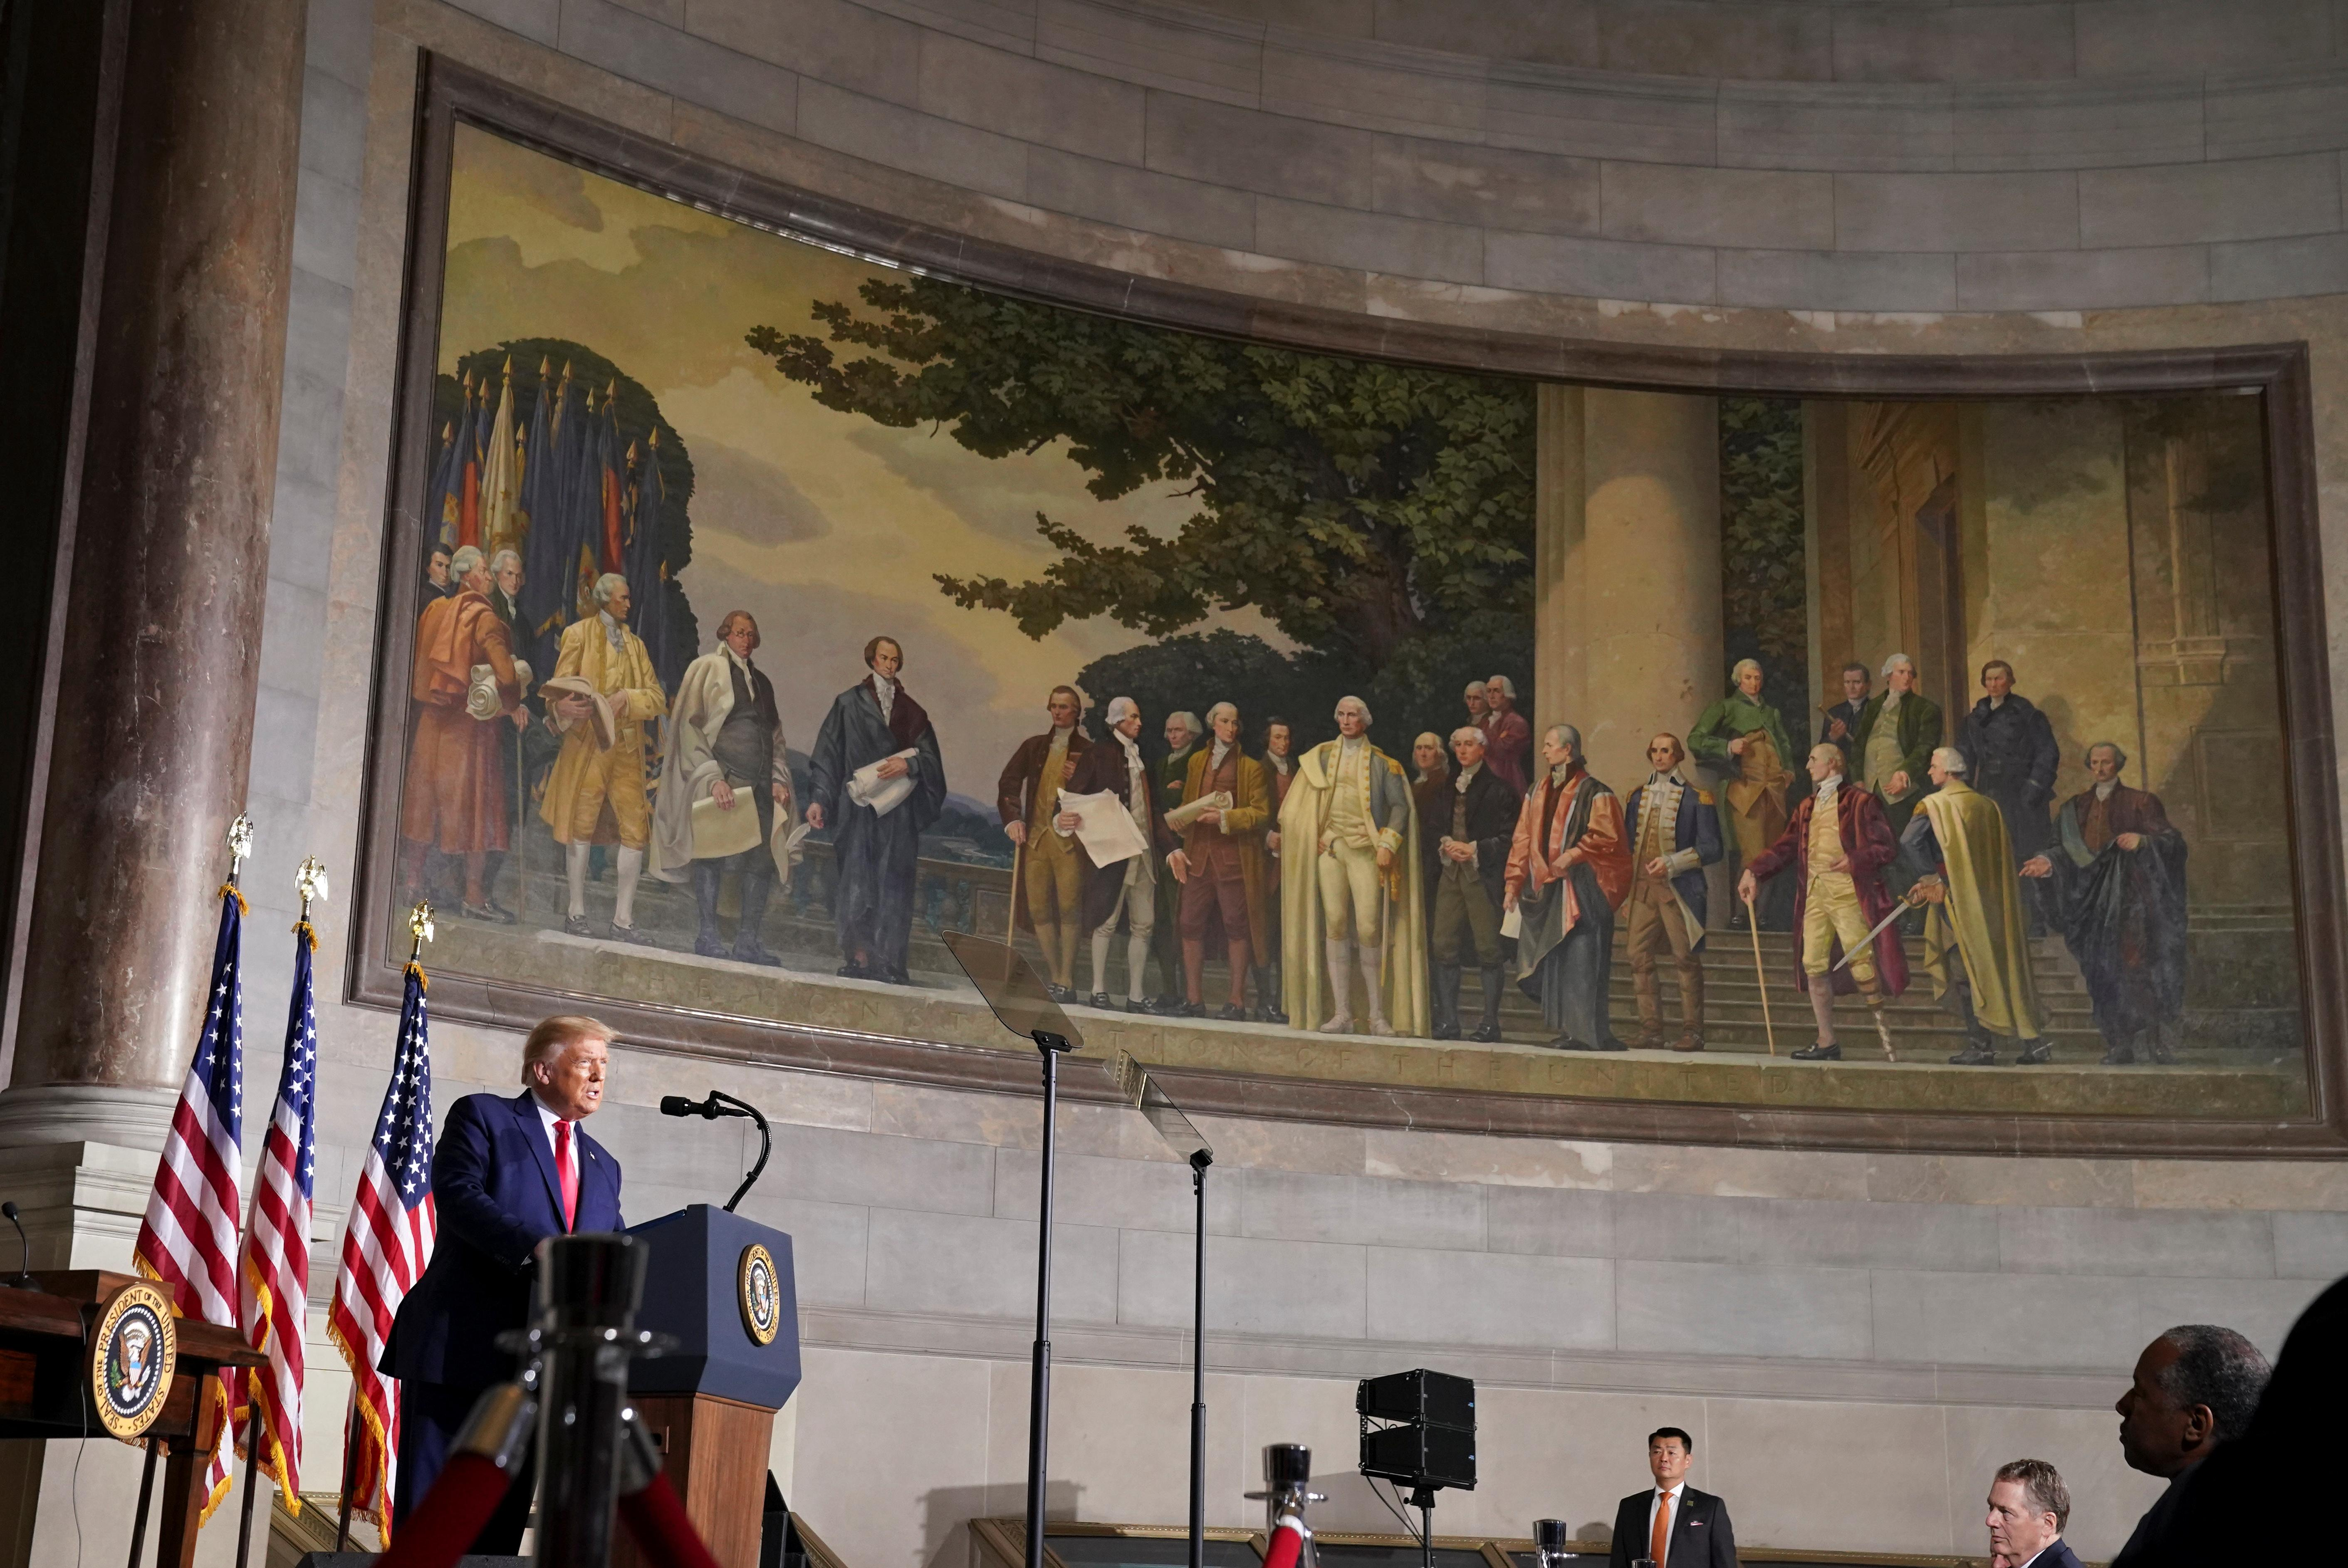 U.S President Donald Trump speaks at the White House Conference on American History at the National Archives Museum in Washington, U.S., September 17, 2020. REUTERS/Kevin Lamarque